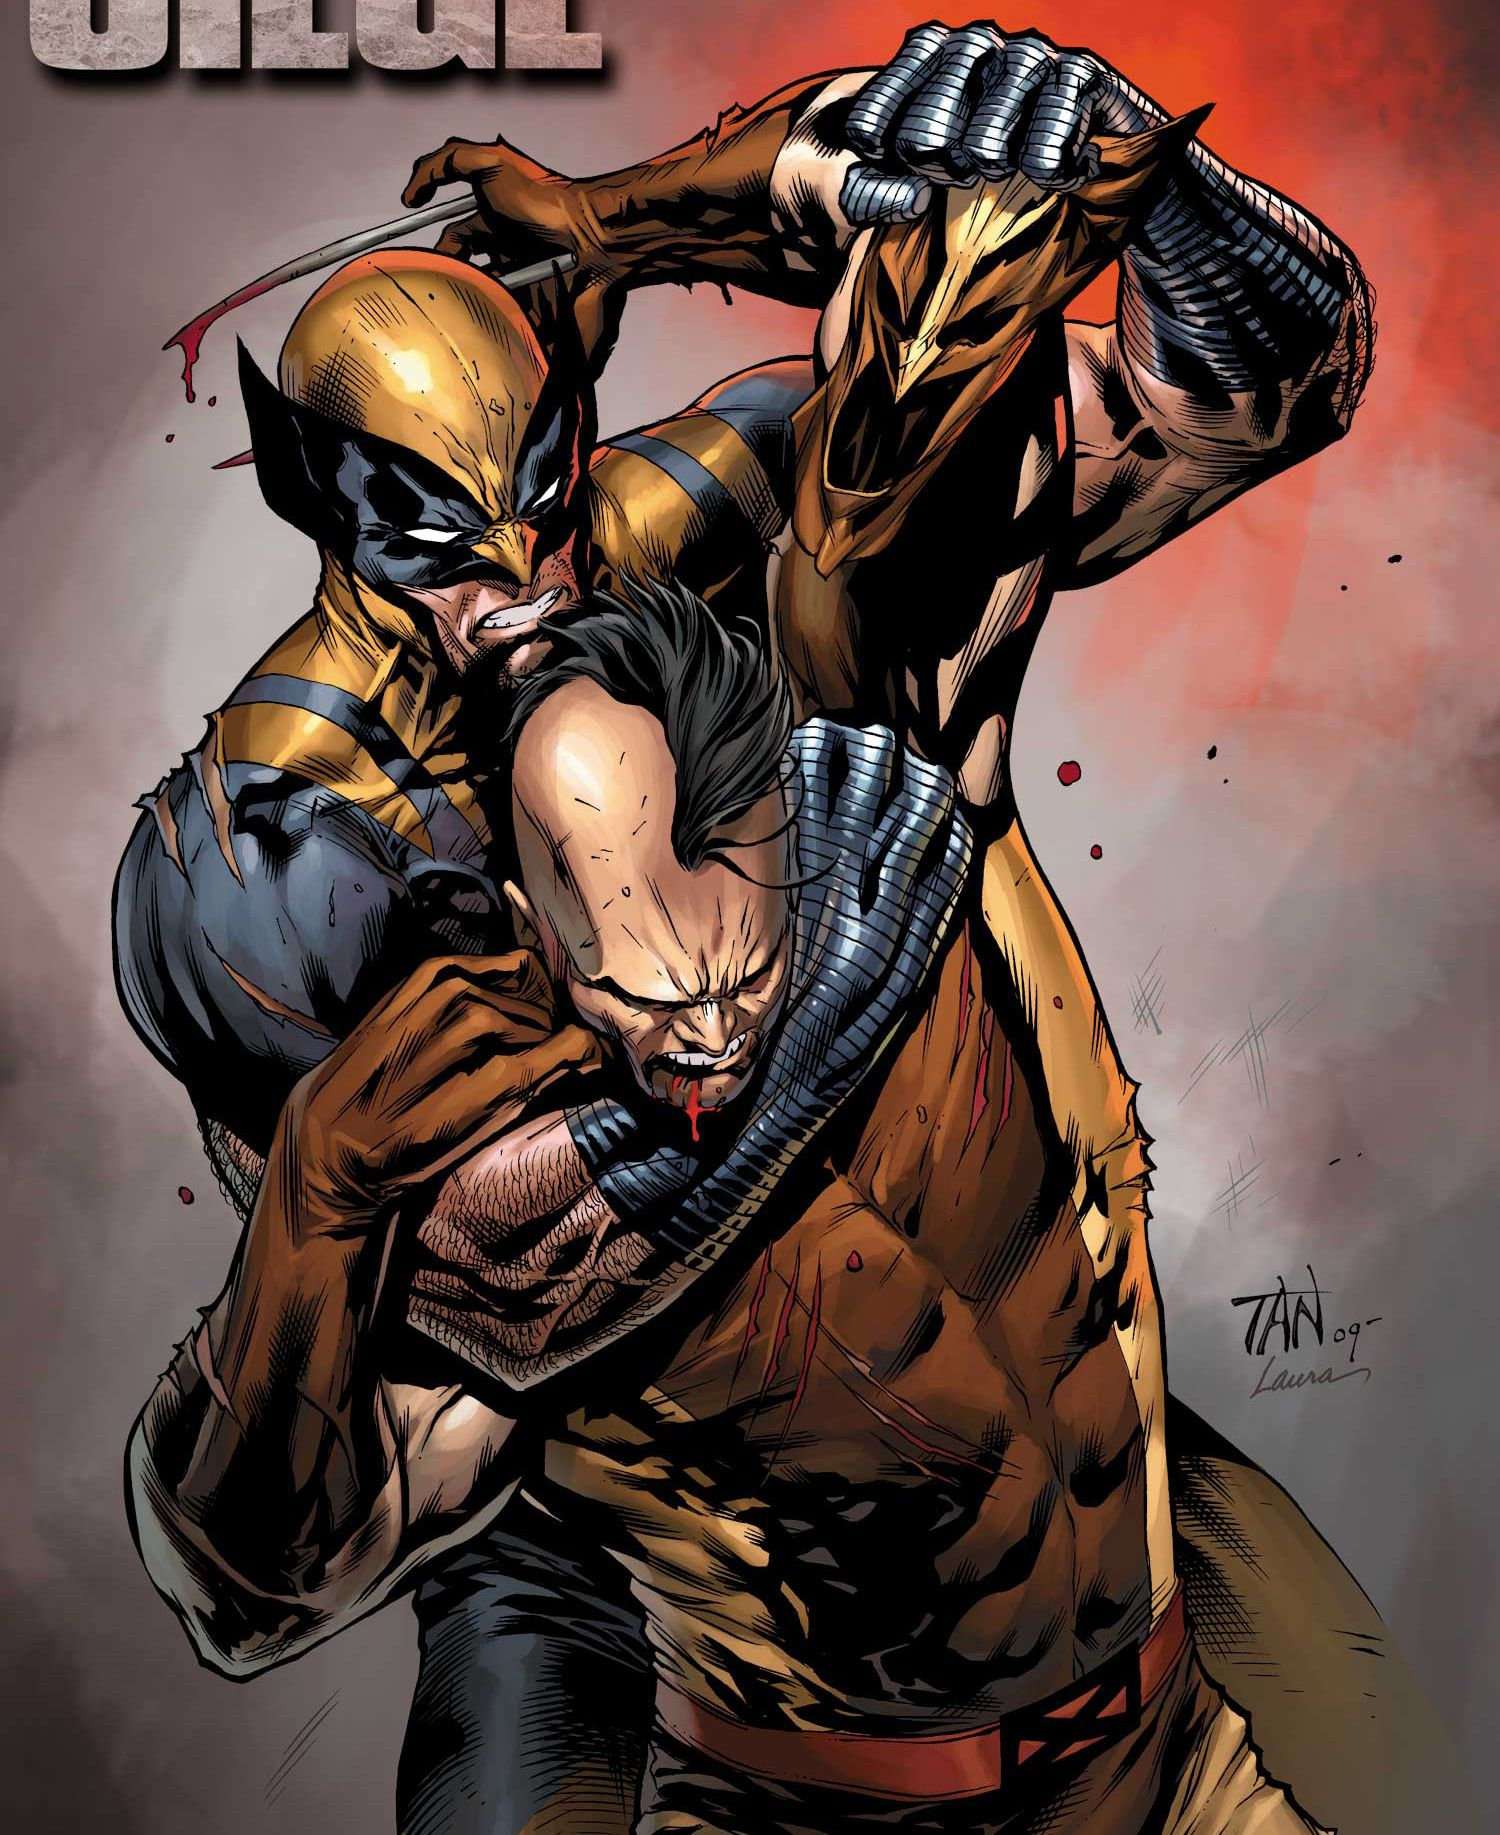 marvel com | wolverine - Marvel Comics Photo (10236072) - Fanpop fanclubs